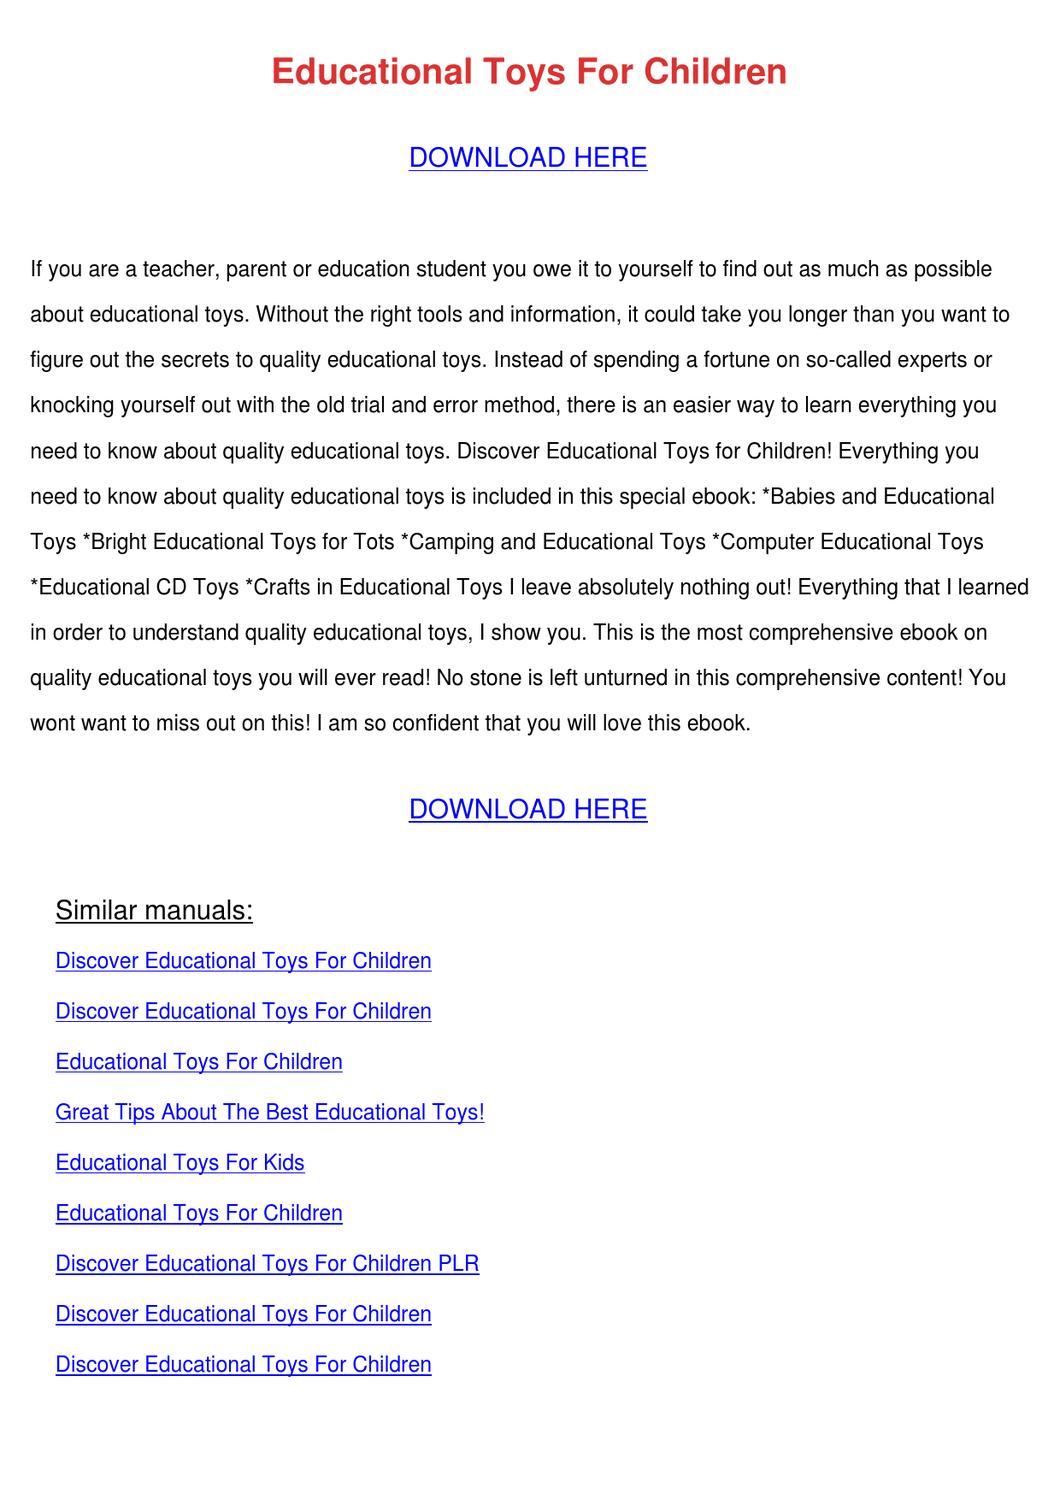 Toys For Tots Logo Pdf : Educational toys for children by emanuelcovert issuu